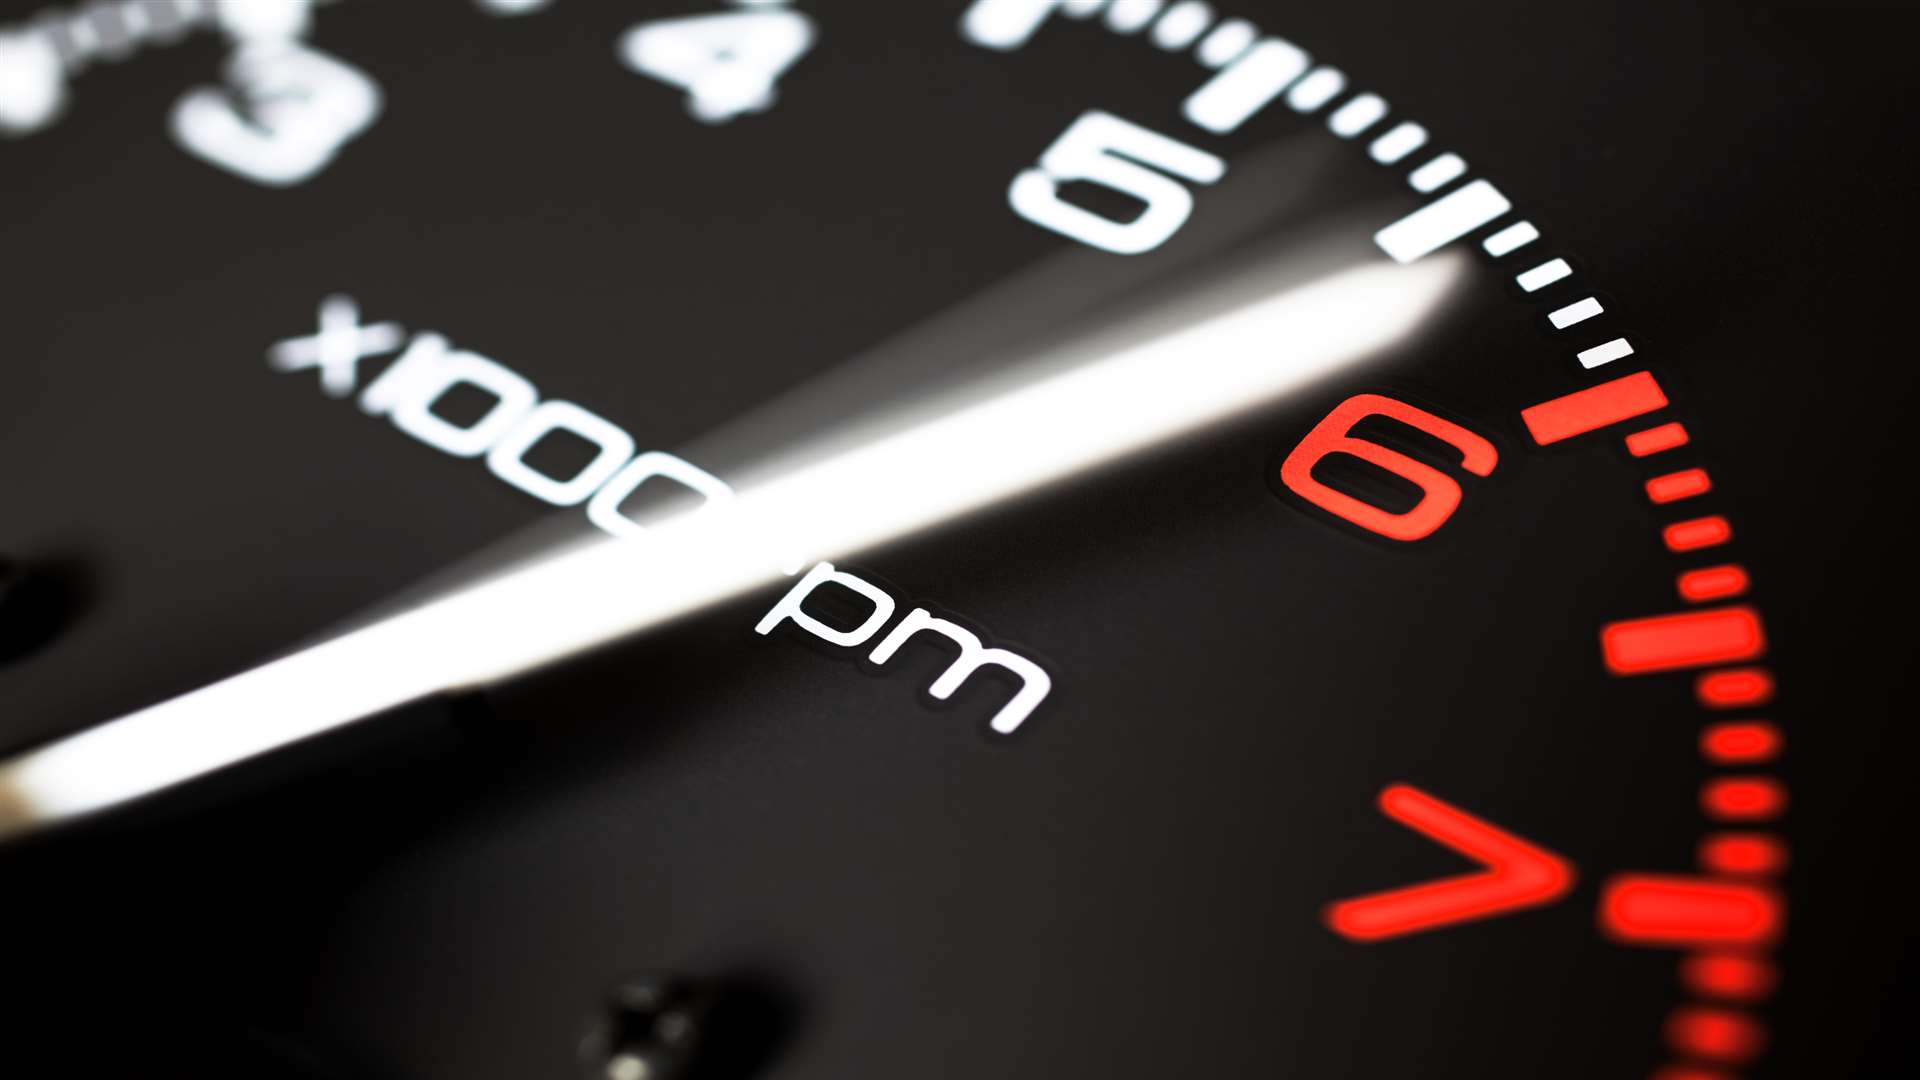 Conroy was clocked doing 111mph Stock picture: Thinkstock Image Library